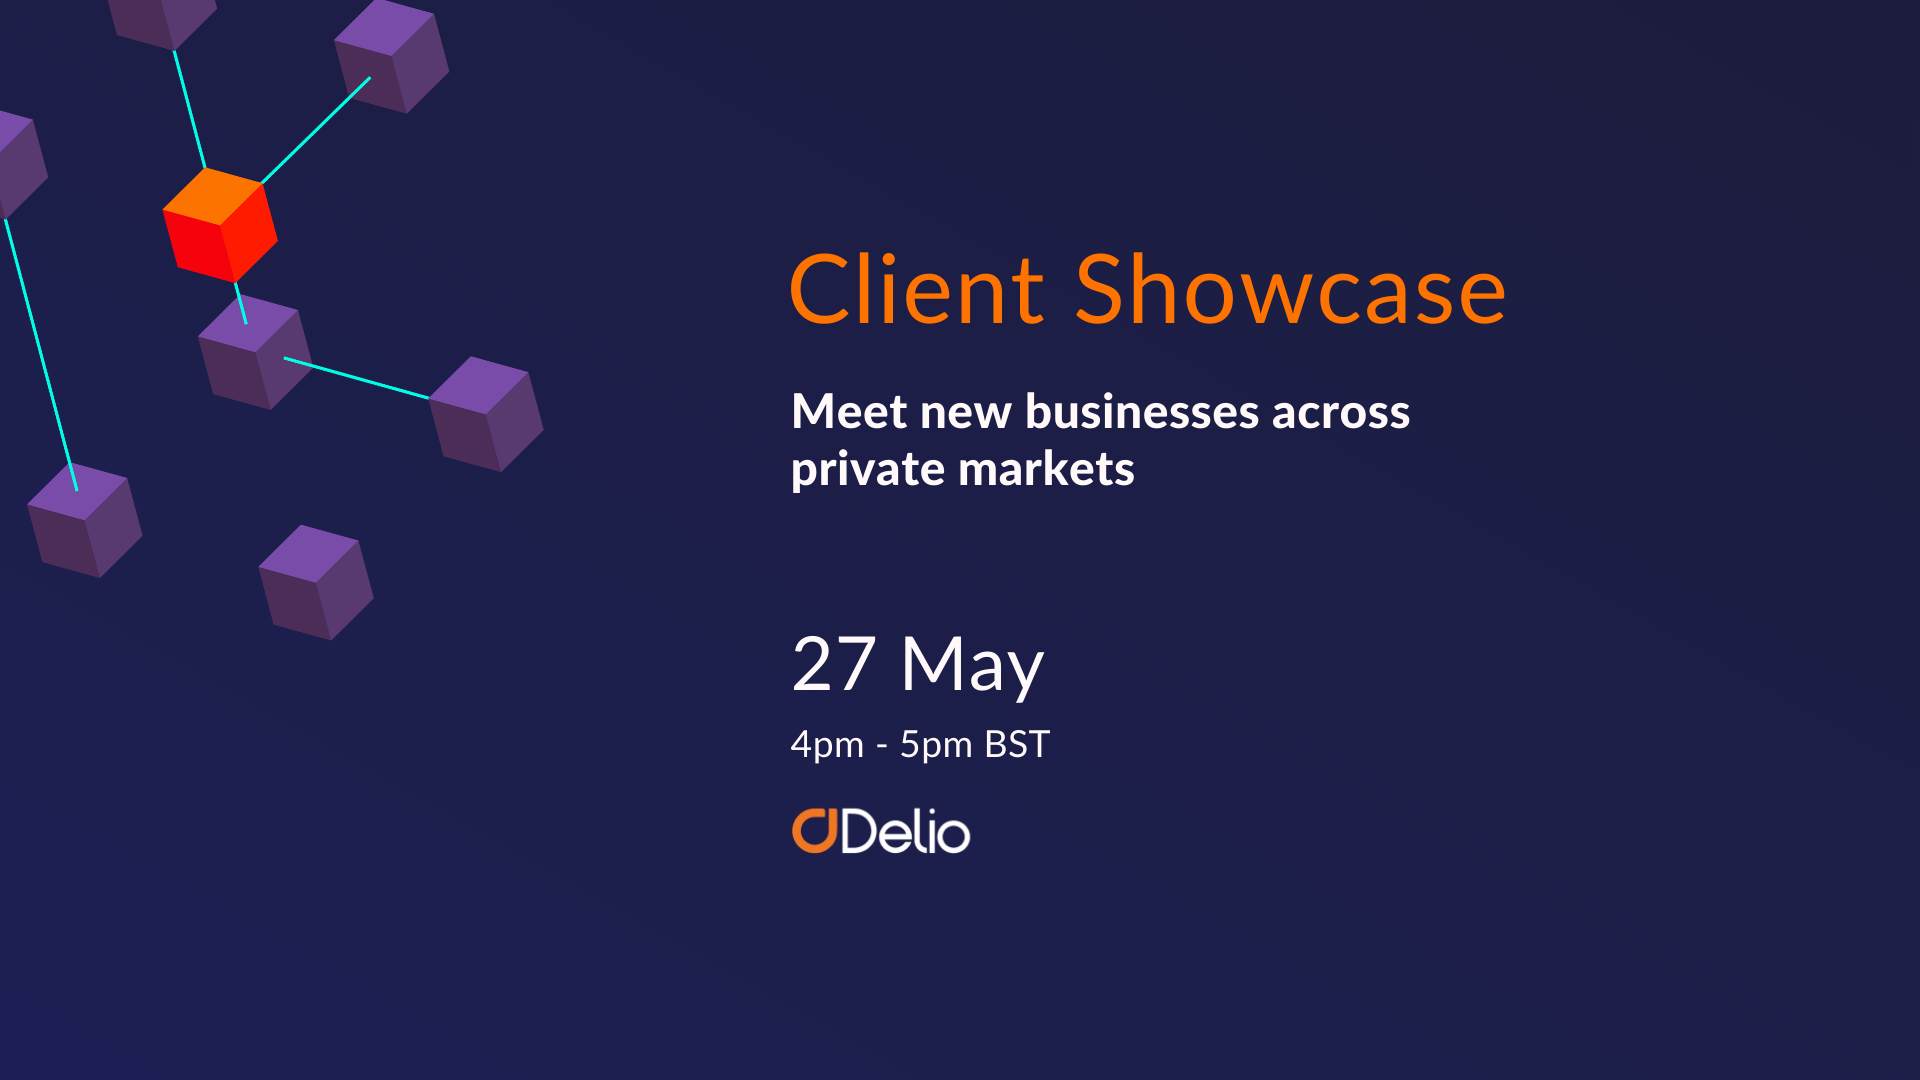 Client Showcase: Meet firms within private markets